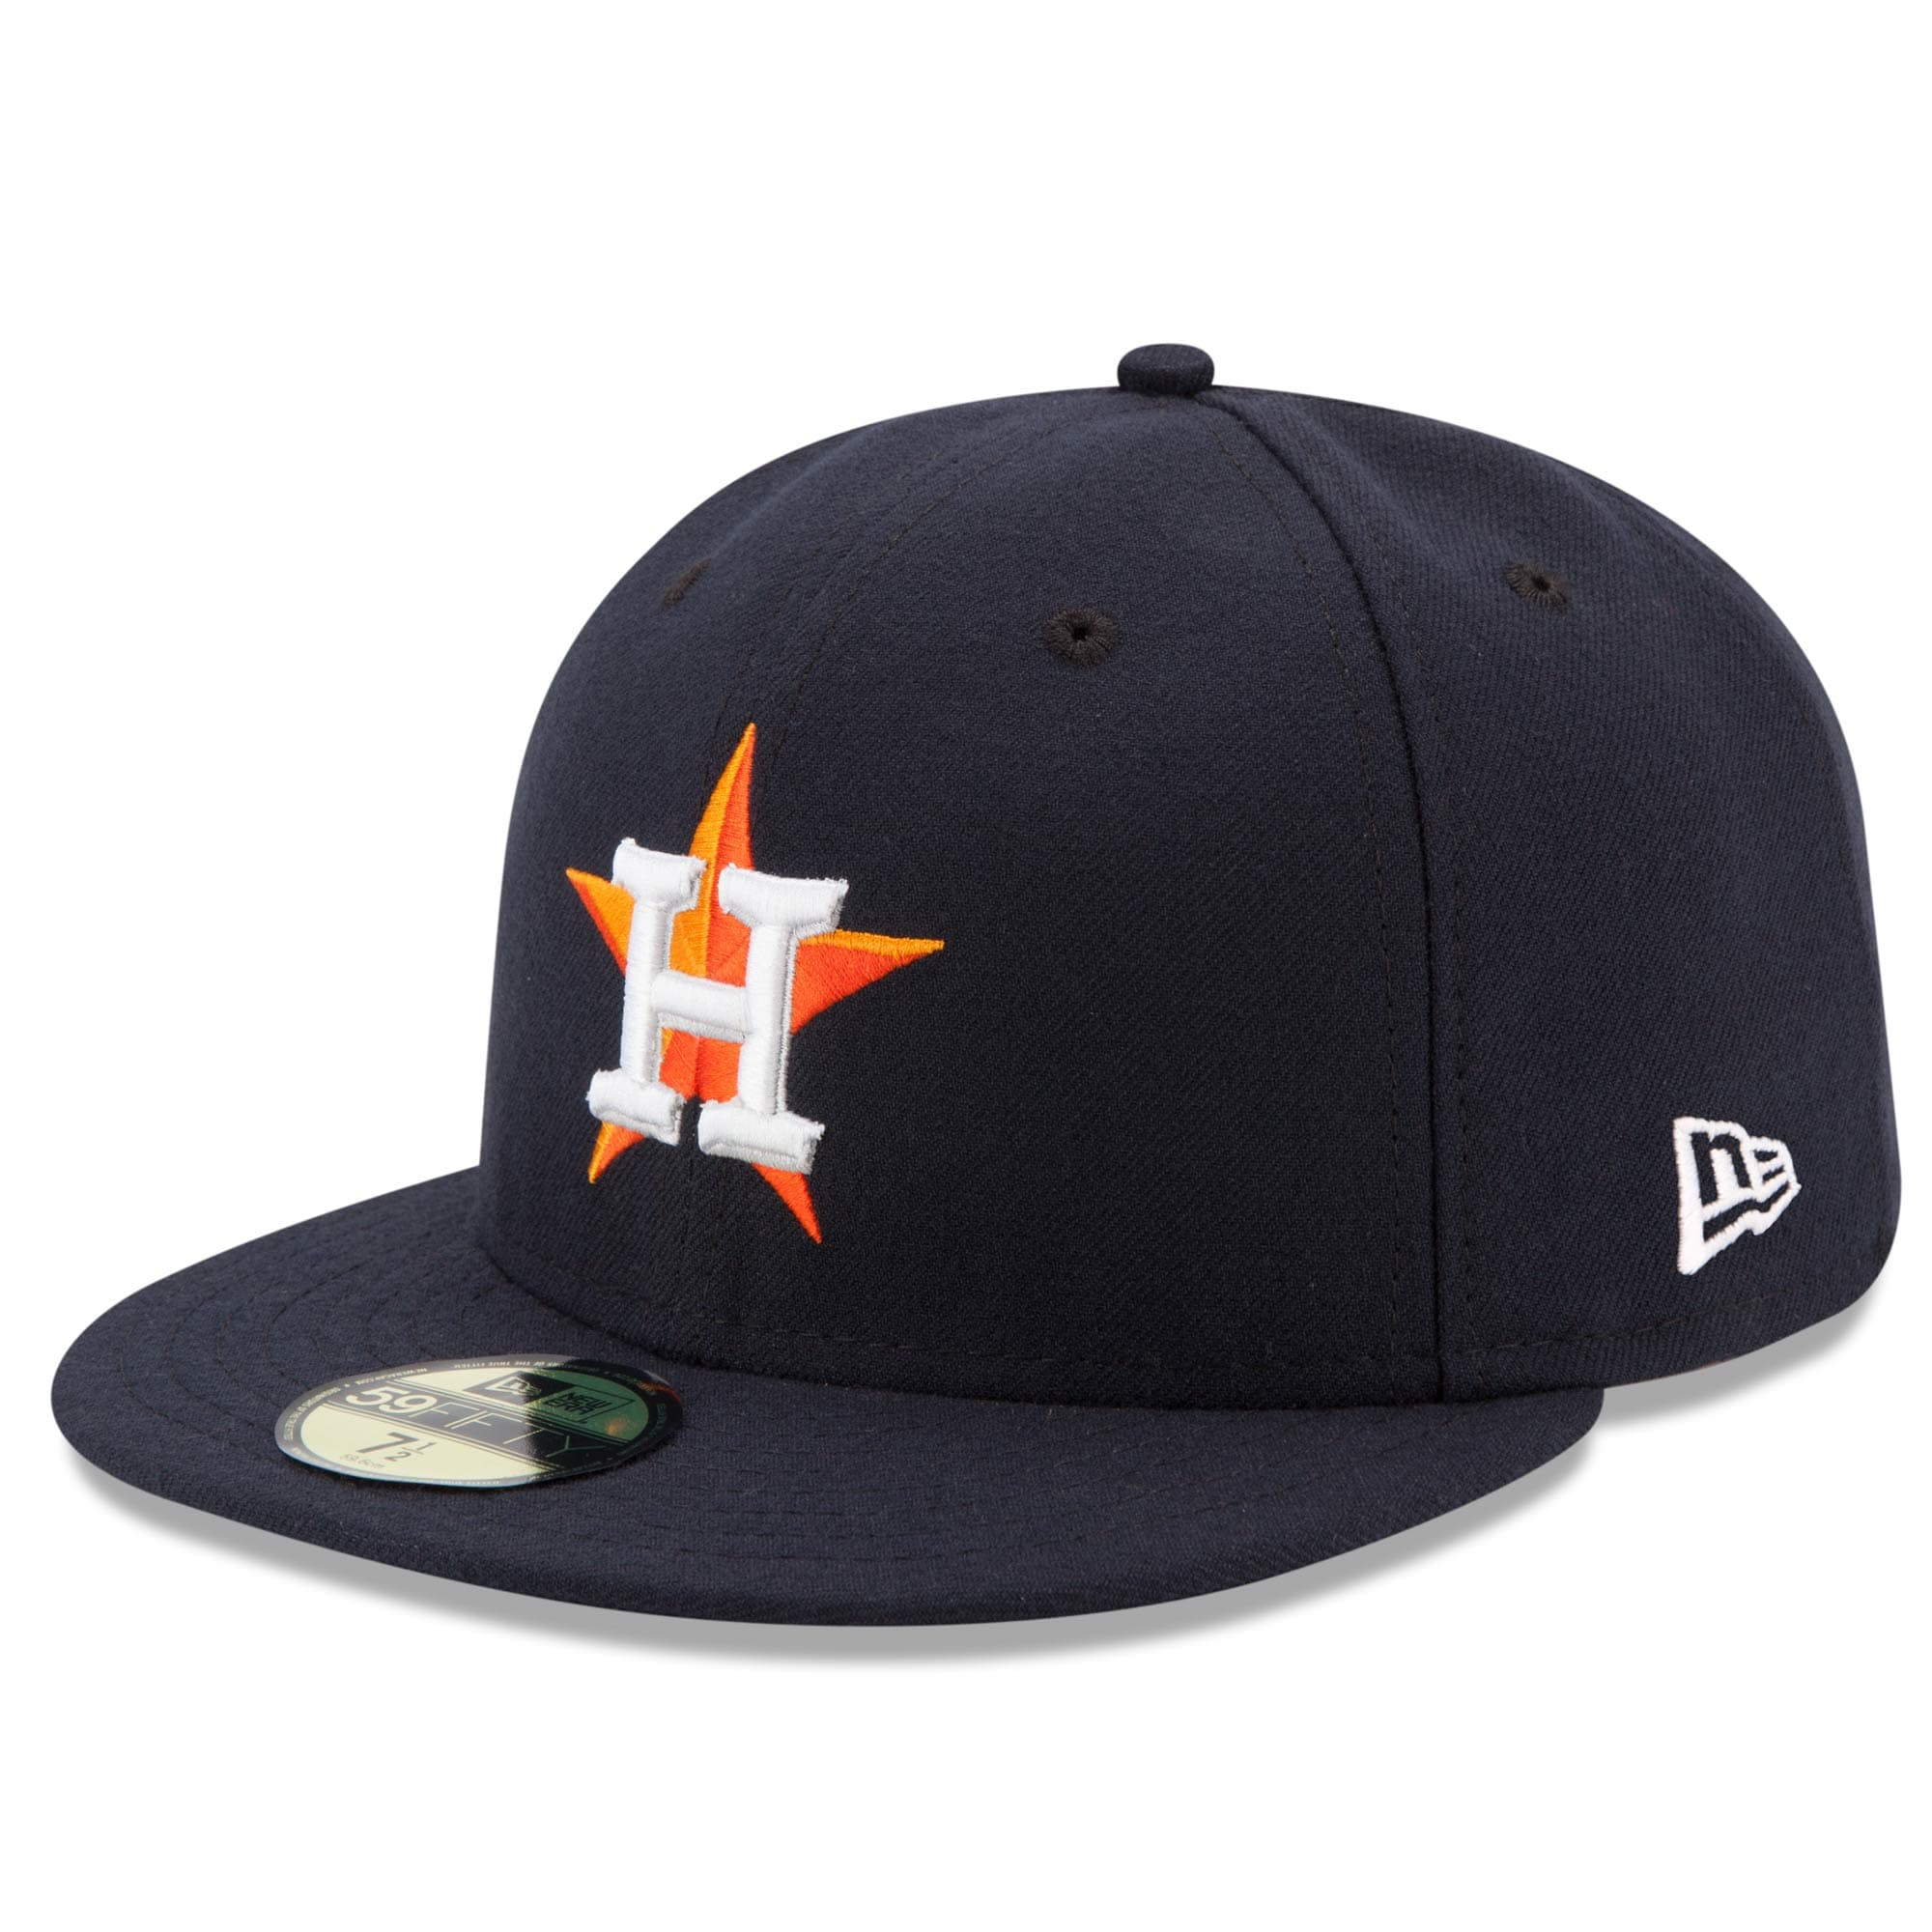 Houston Astros New Era Home Authentic Collection On Field 59FIFTY Performance Fitted Hat - Navy